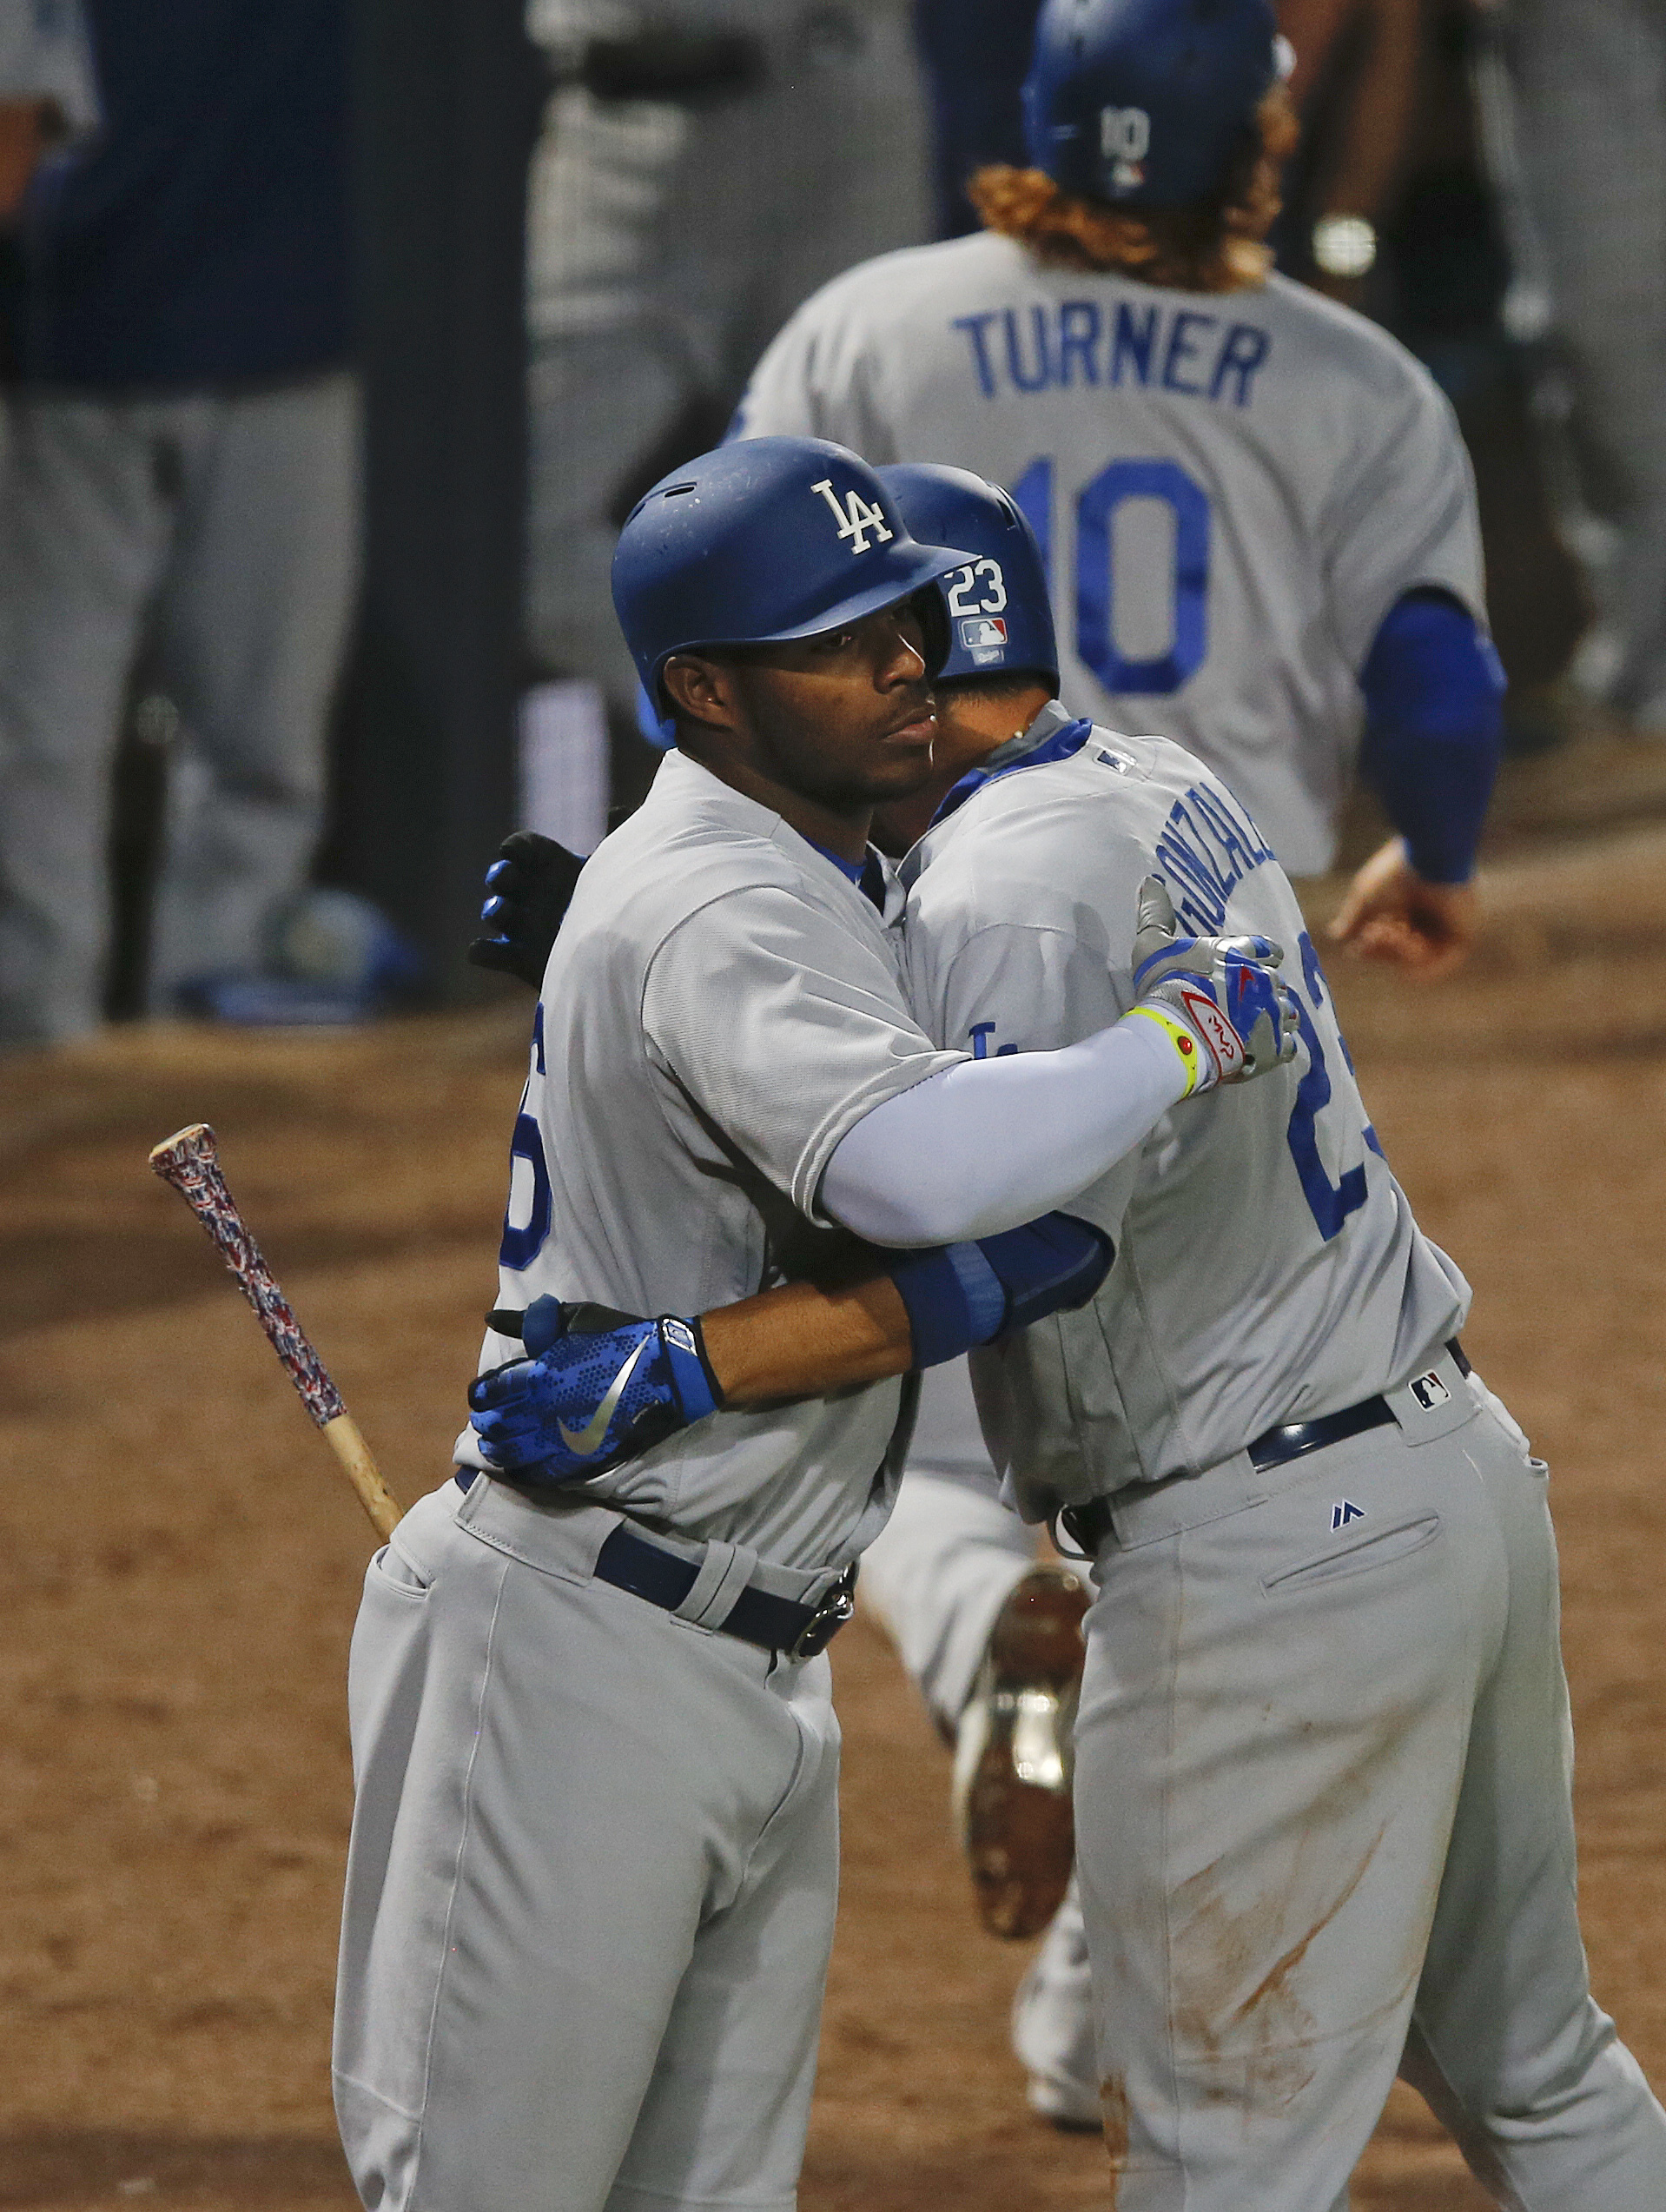 Los Angeles Dodgers' Adrian Gonzalez, right, celebrates with on-deck batter Yasiel Puig (66) after hitting a two-run home in the sixth inning of a baseball game against the Atlanta Braves on Wednesday, April 20, 2016, in Atlanta. (AP Photo/John Bazemore)